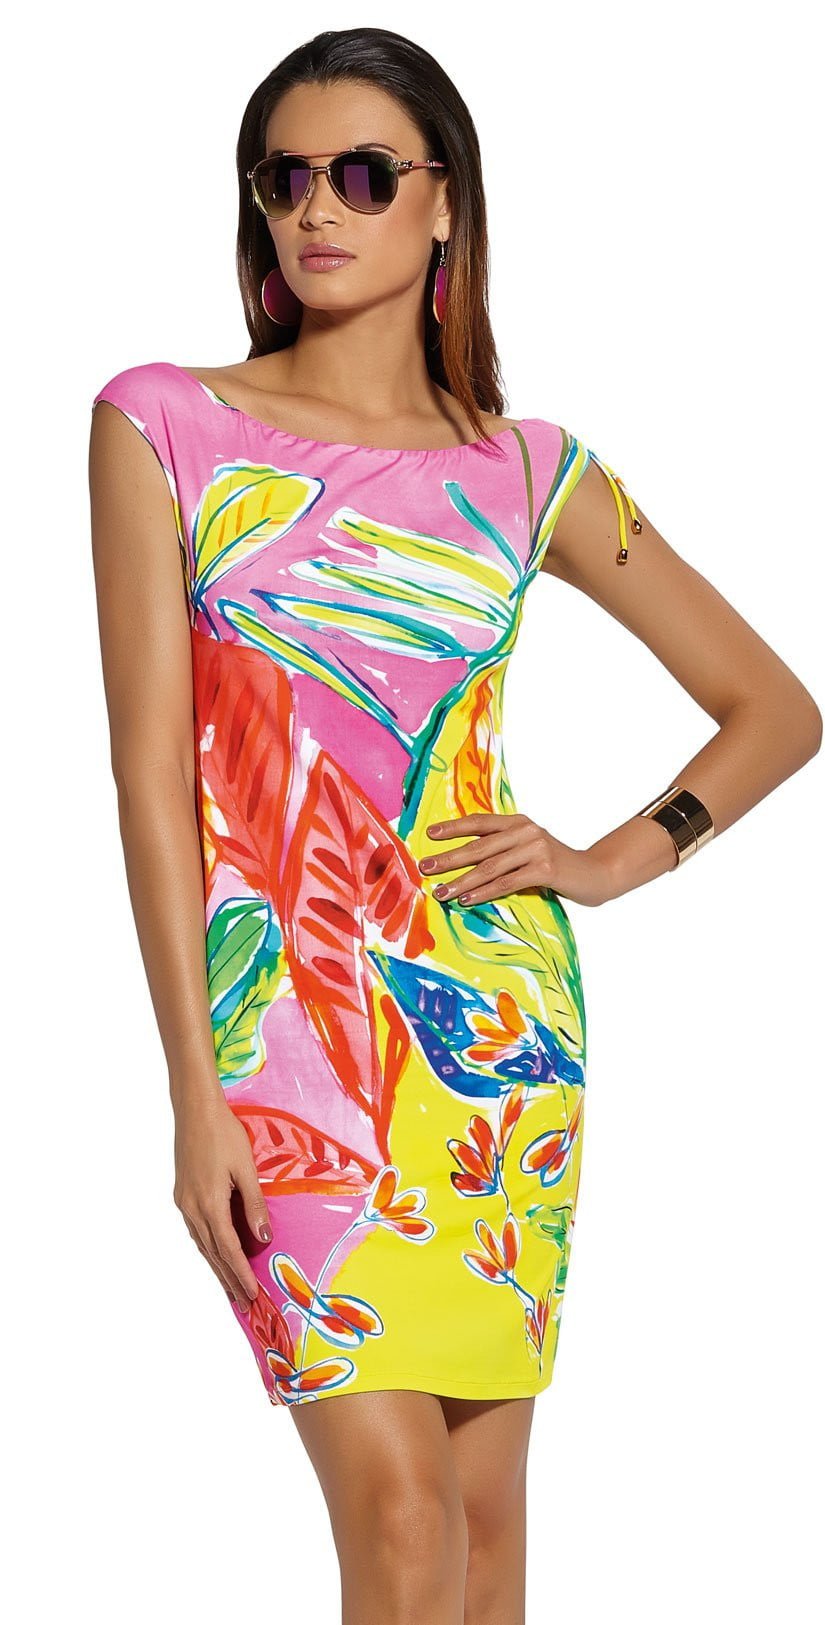 Roidal Paradise Vestido Ivet Dress 678/01 01: